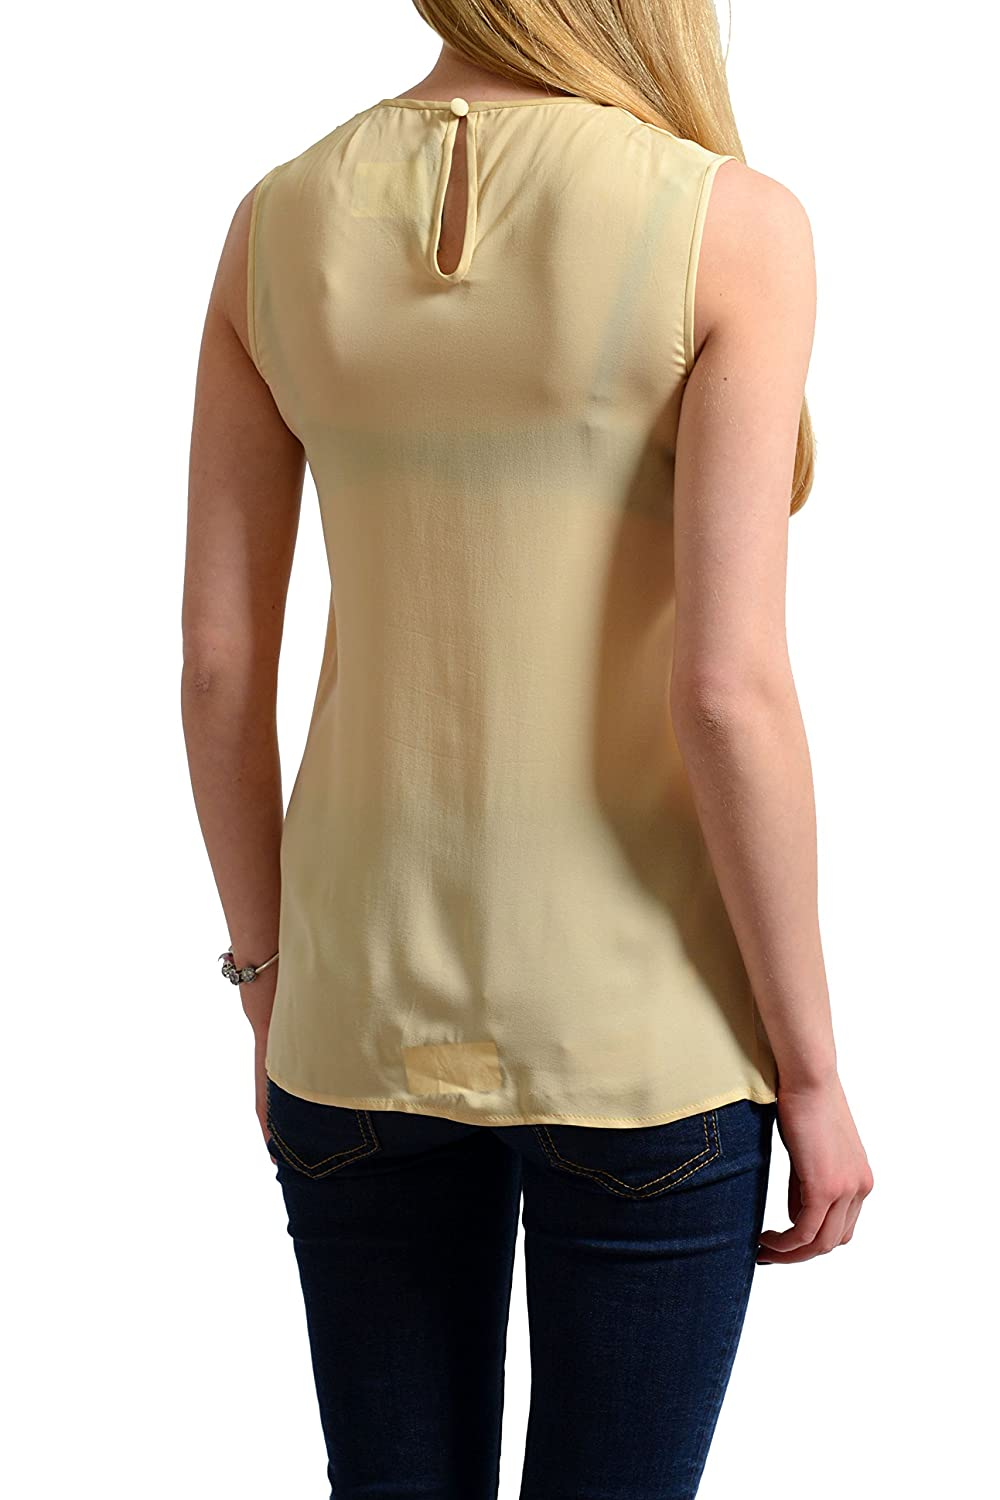 Dsquared2 100% Silk Nude Beige Women's Sleeveless Blouse Top US S IT 40